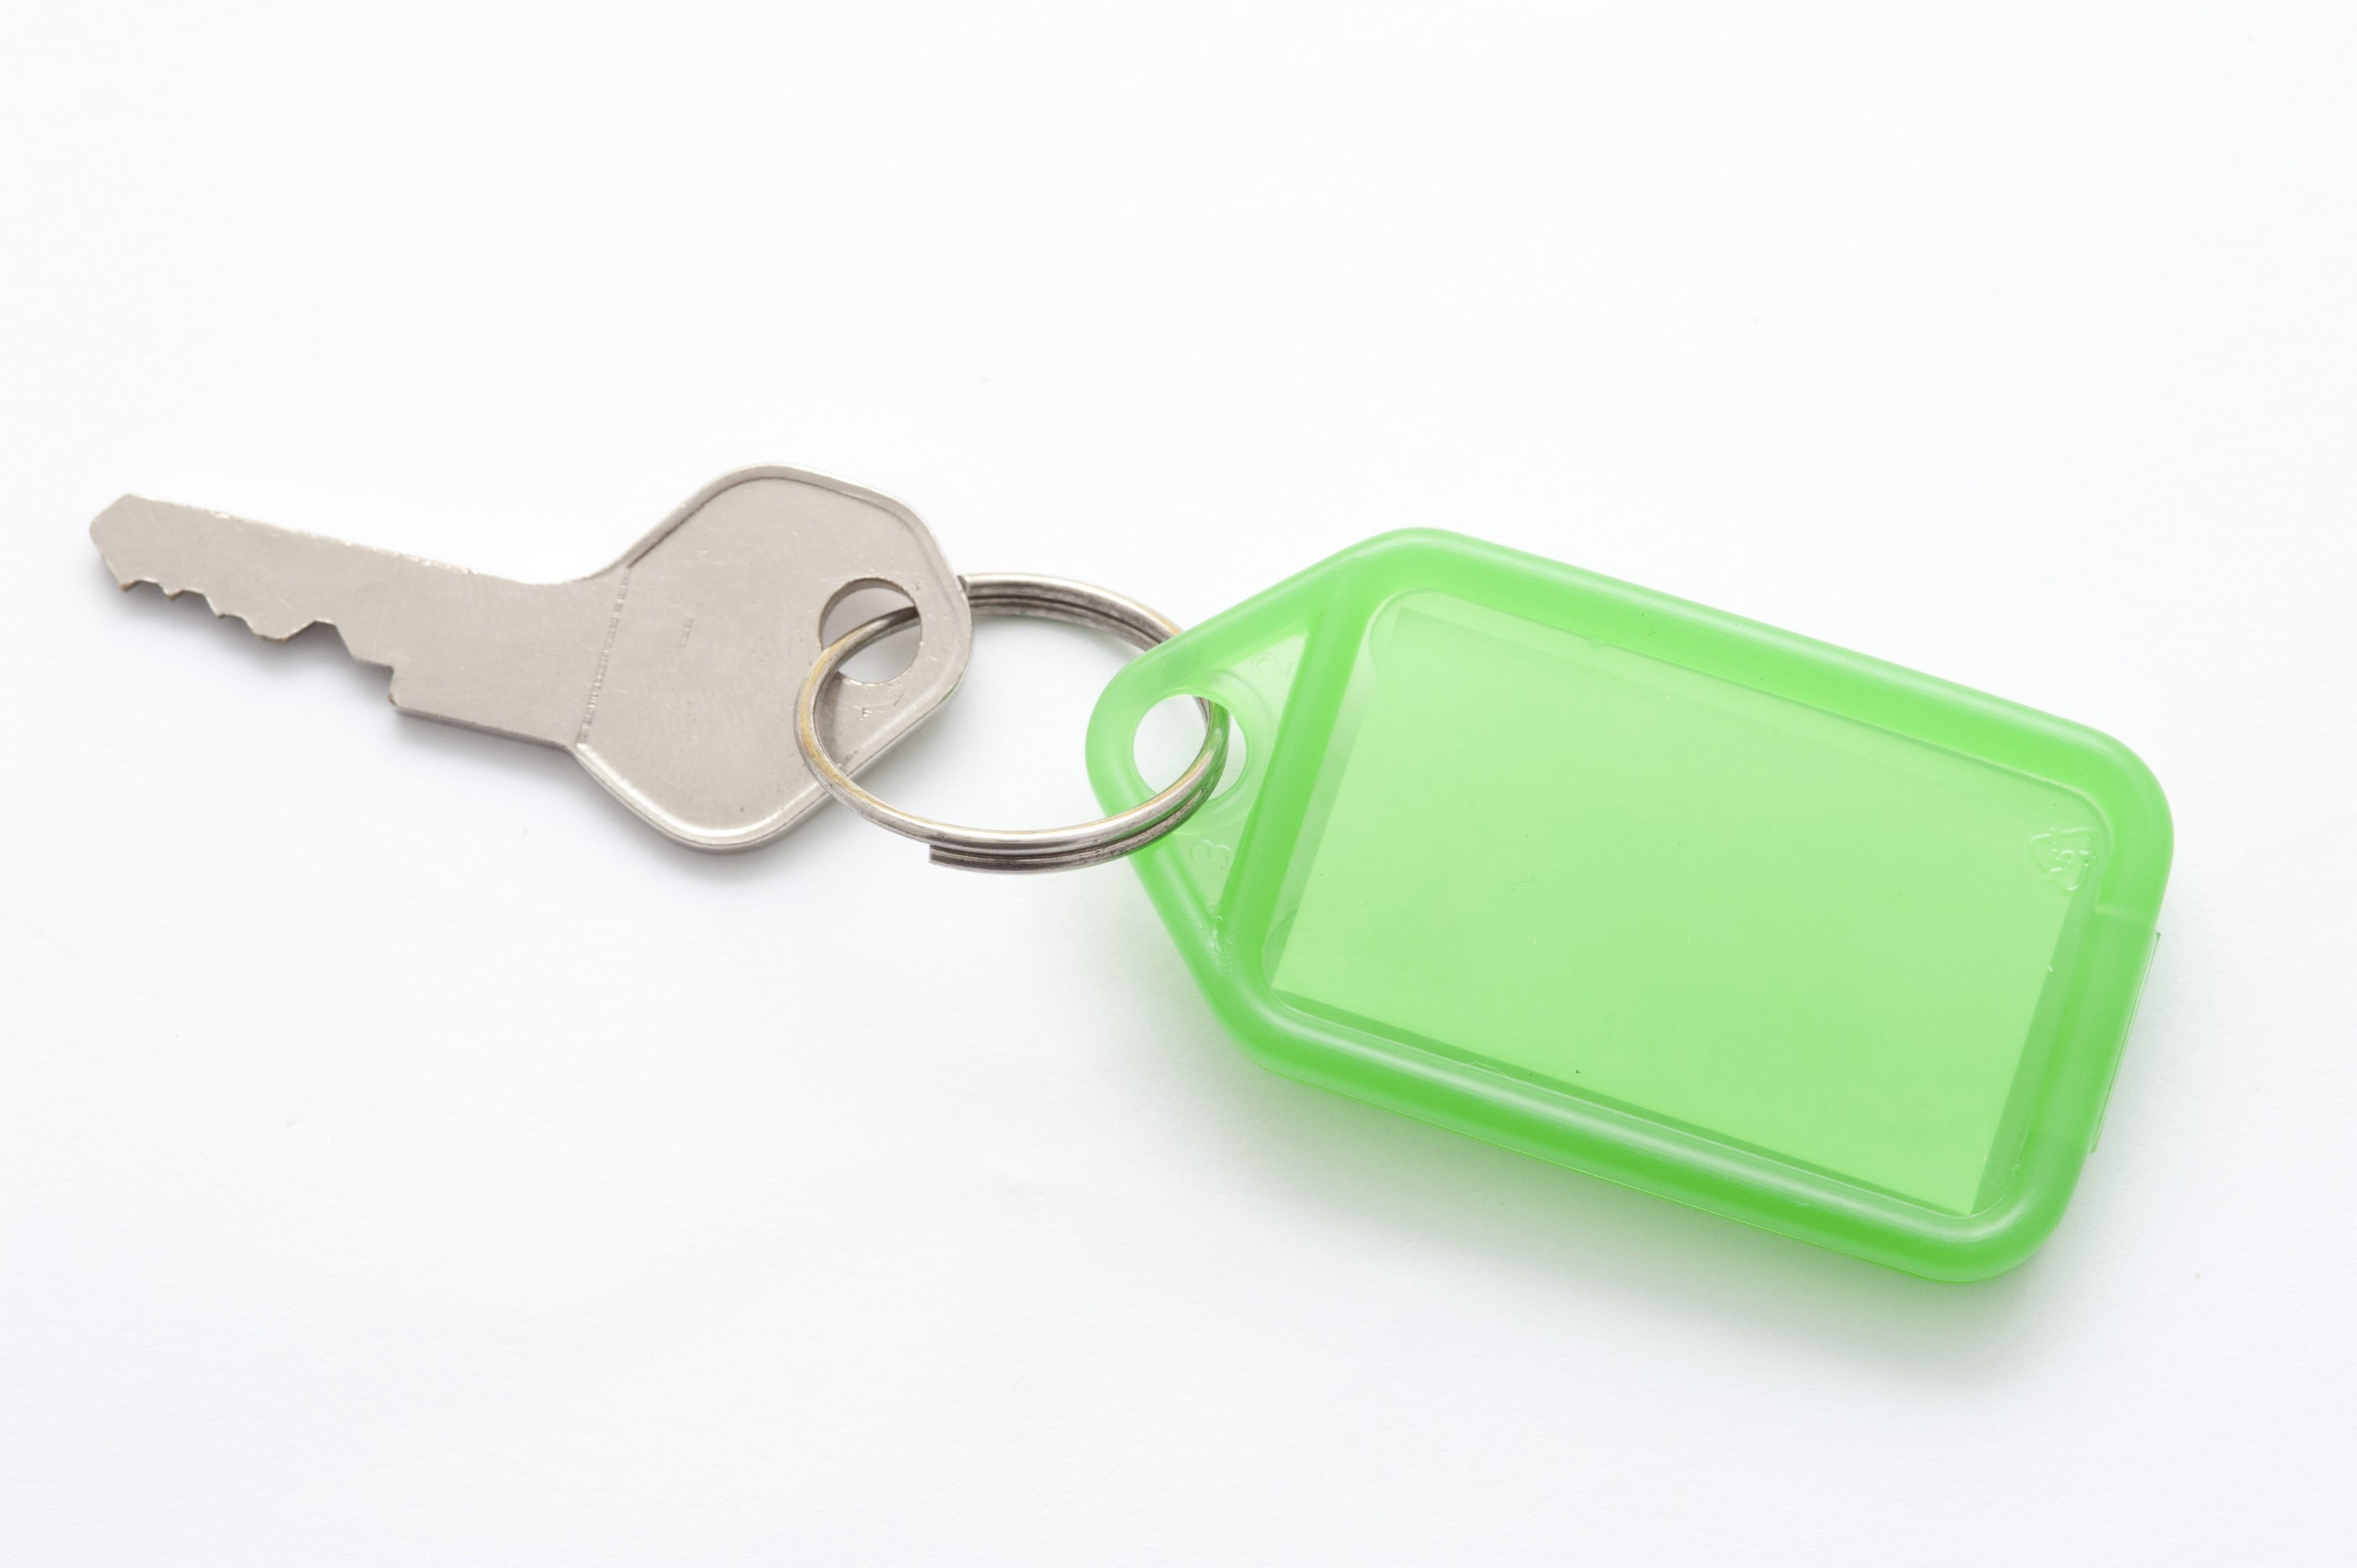 Free Stock Photo Of Key With Blank Key Tag Stockmedia Cc